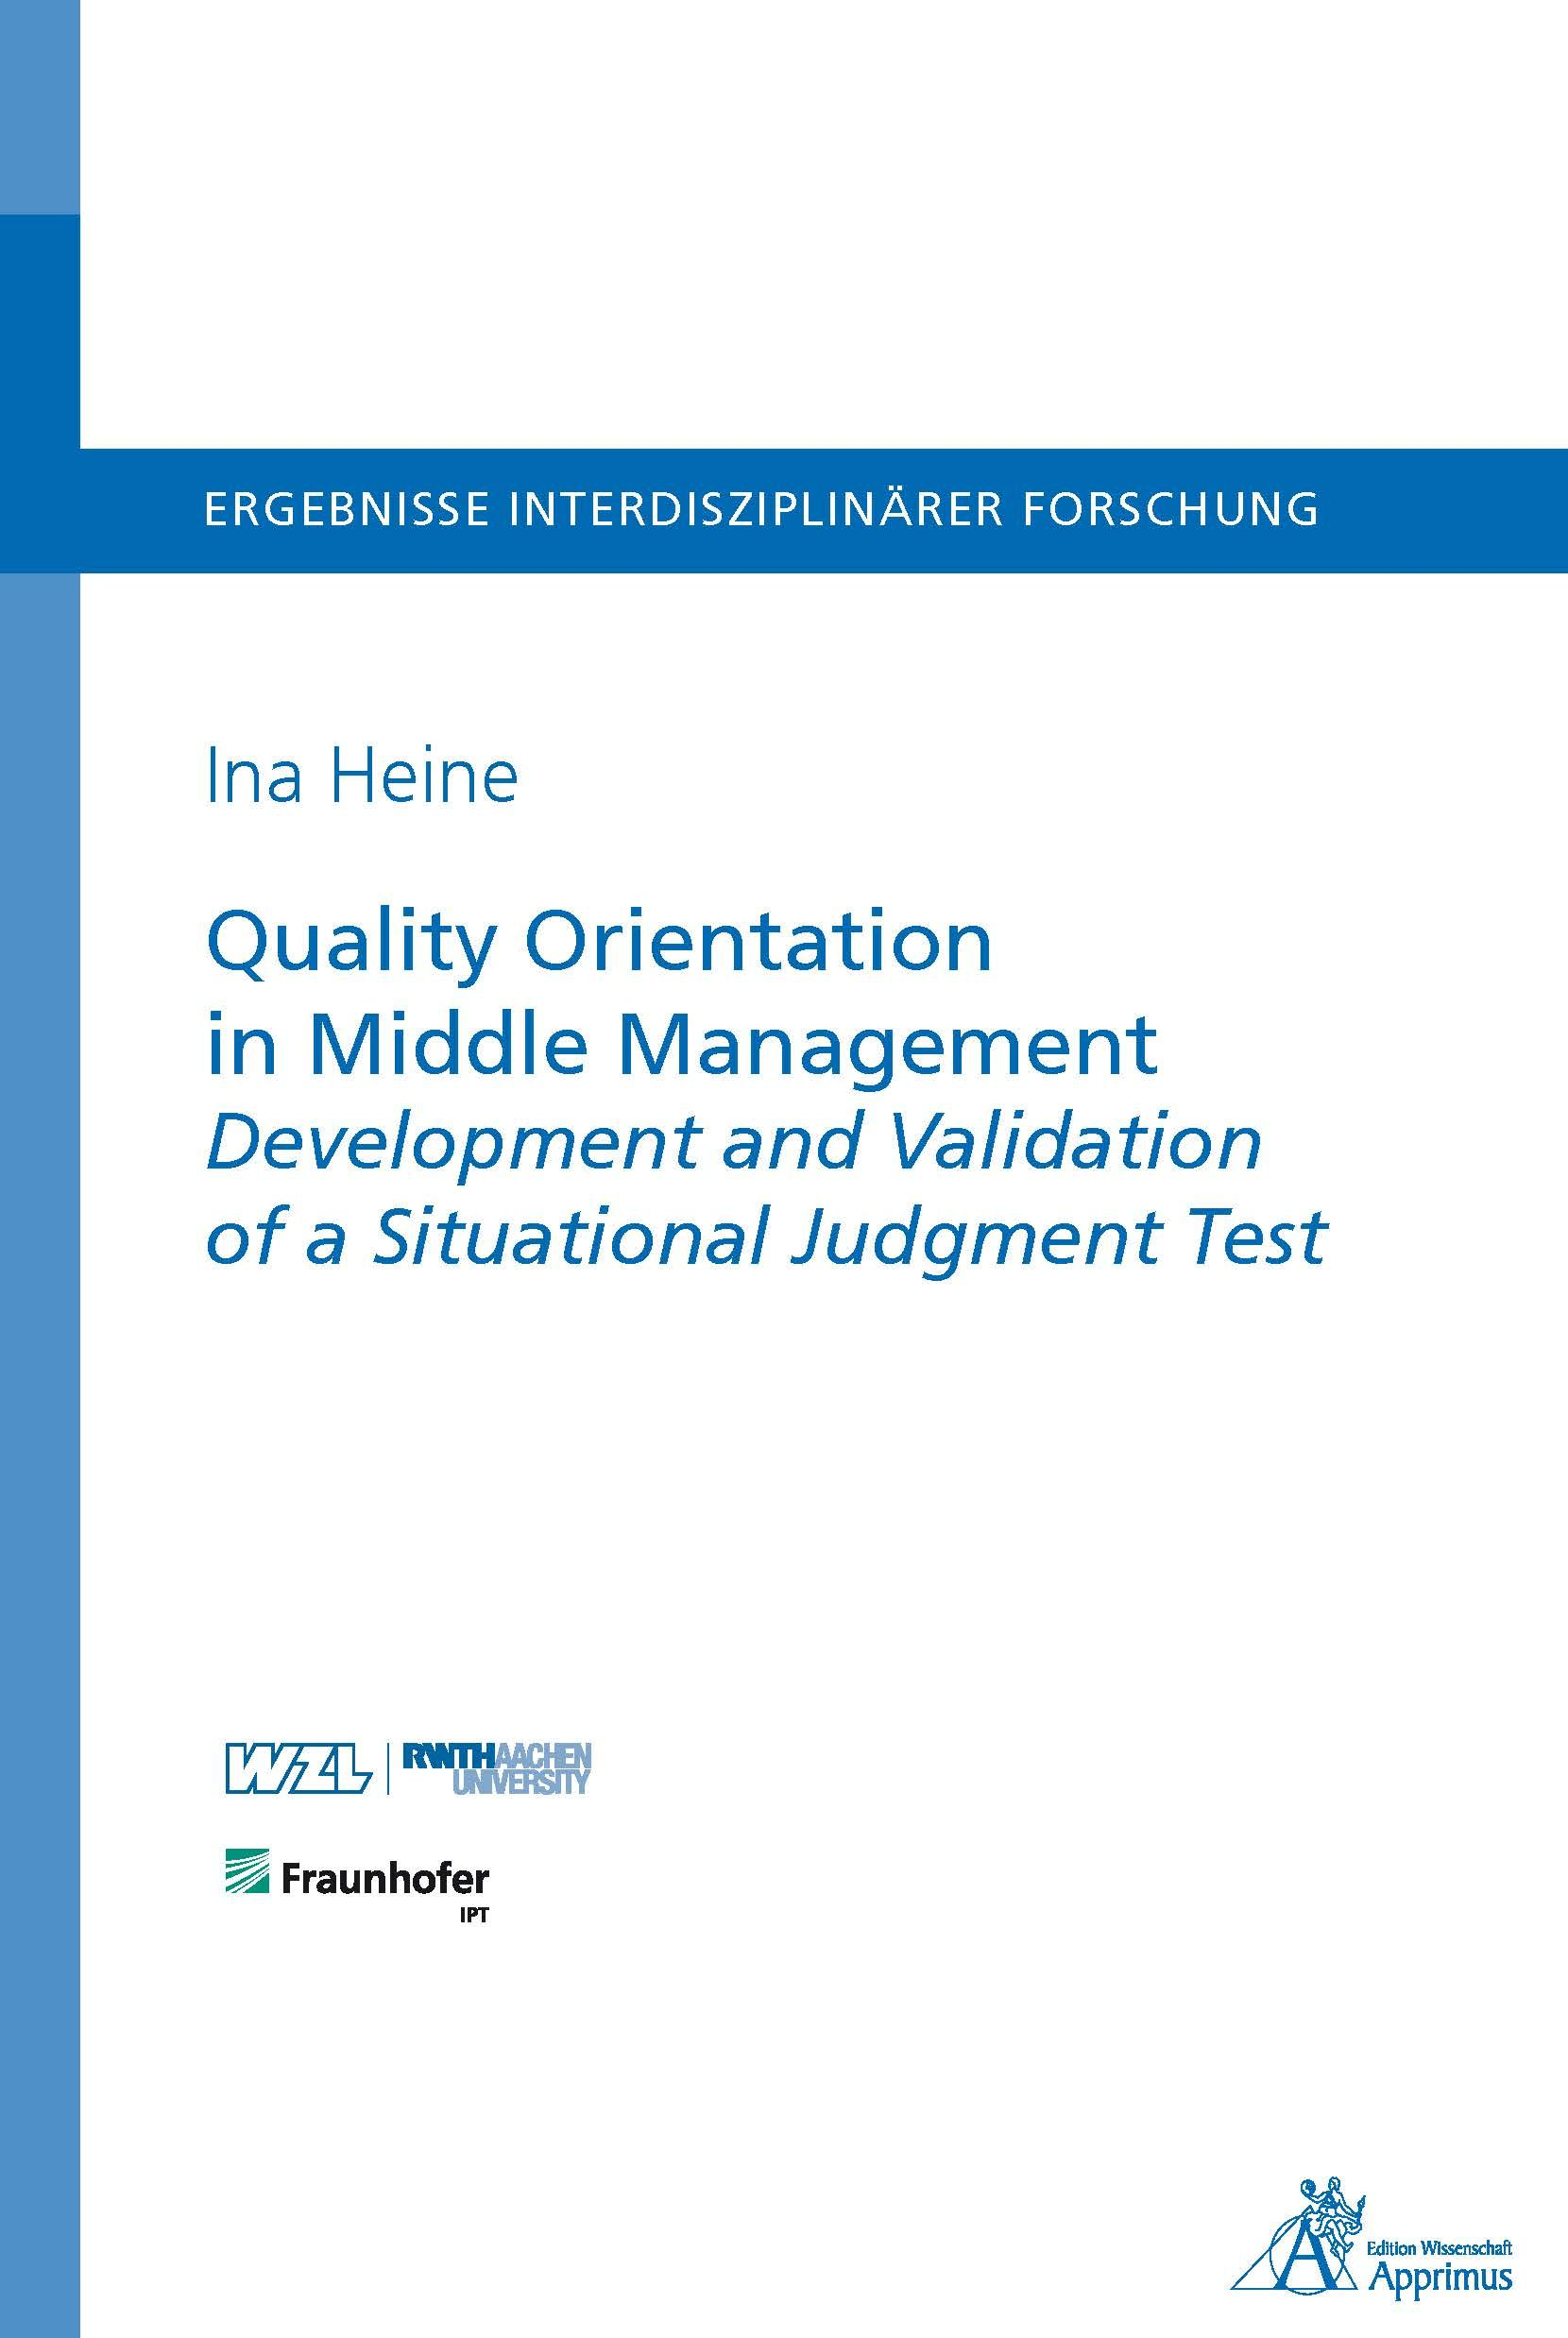 Quality Orientation in Middle Management Development and Validation of a Situational Judgment Test